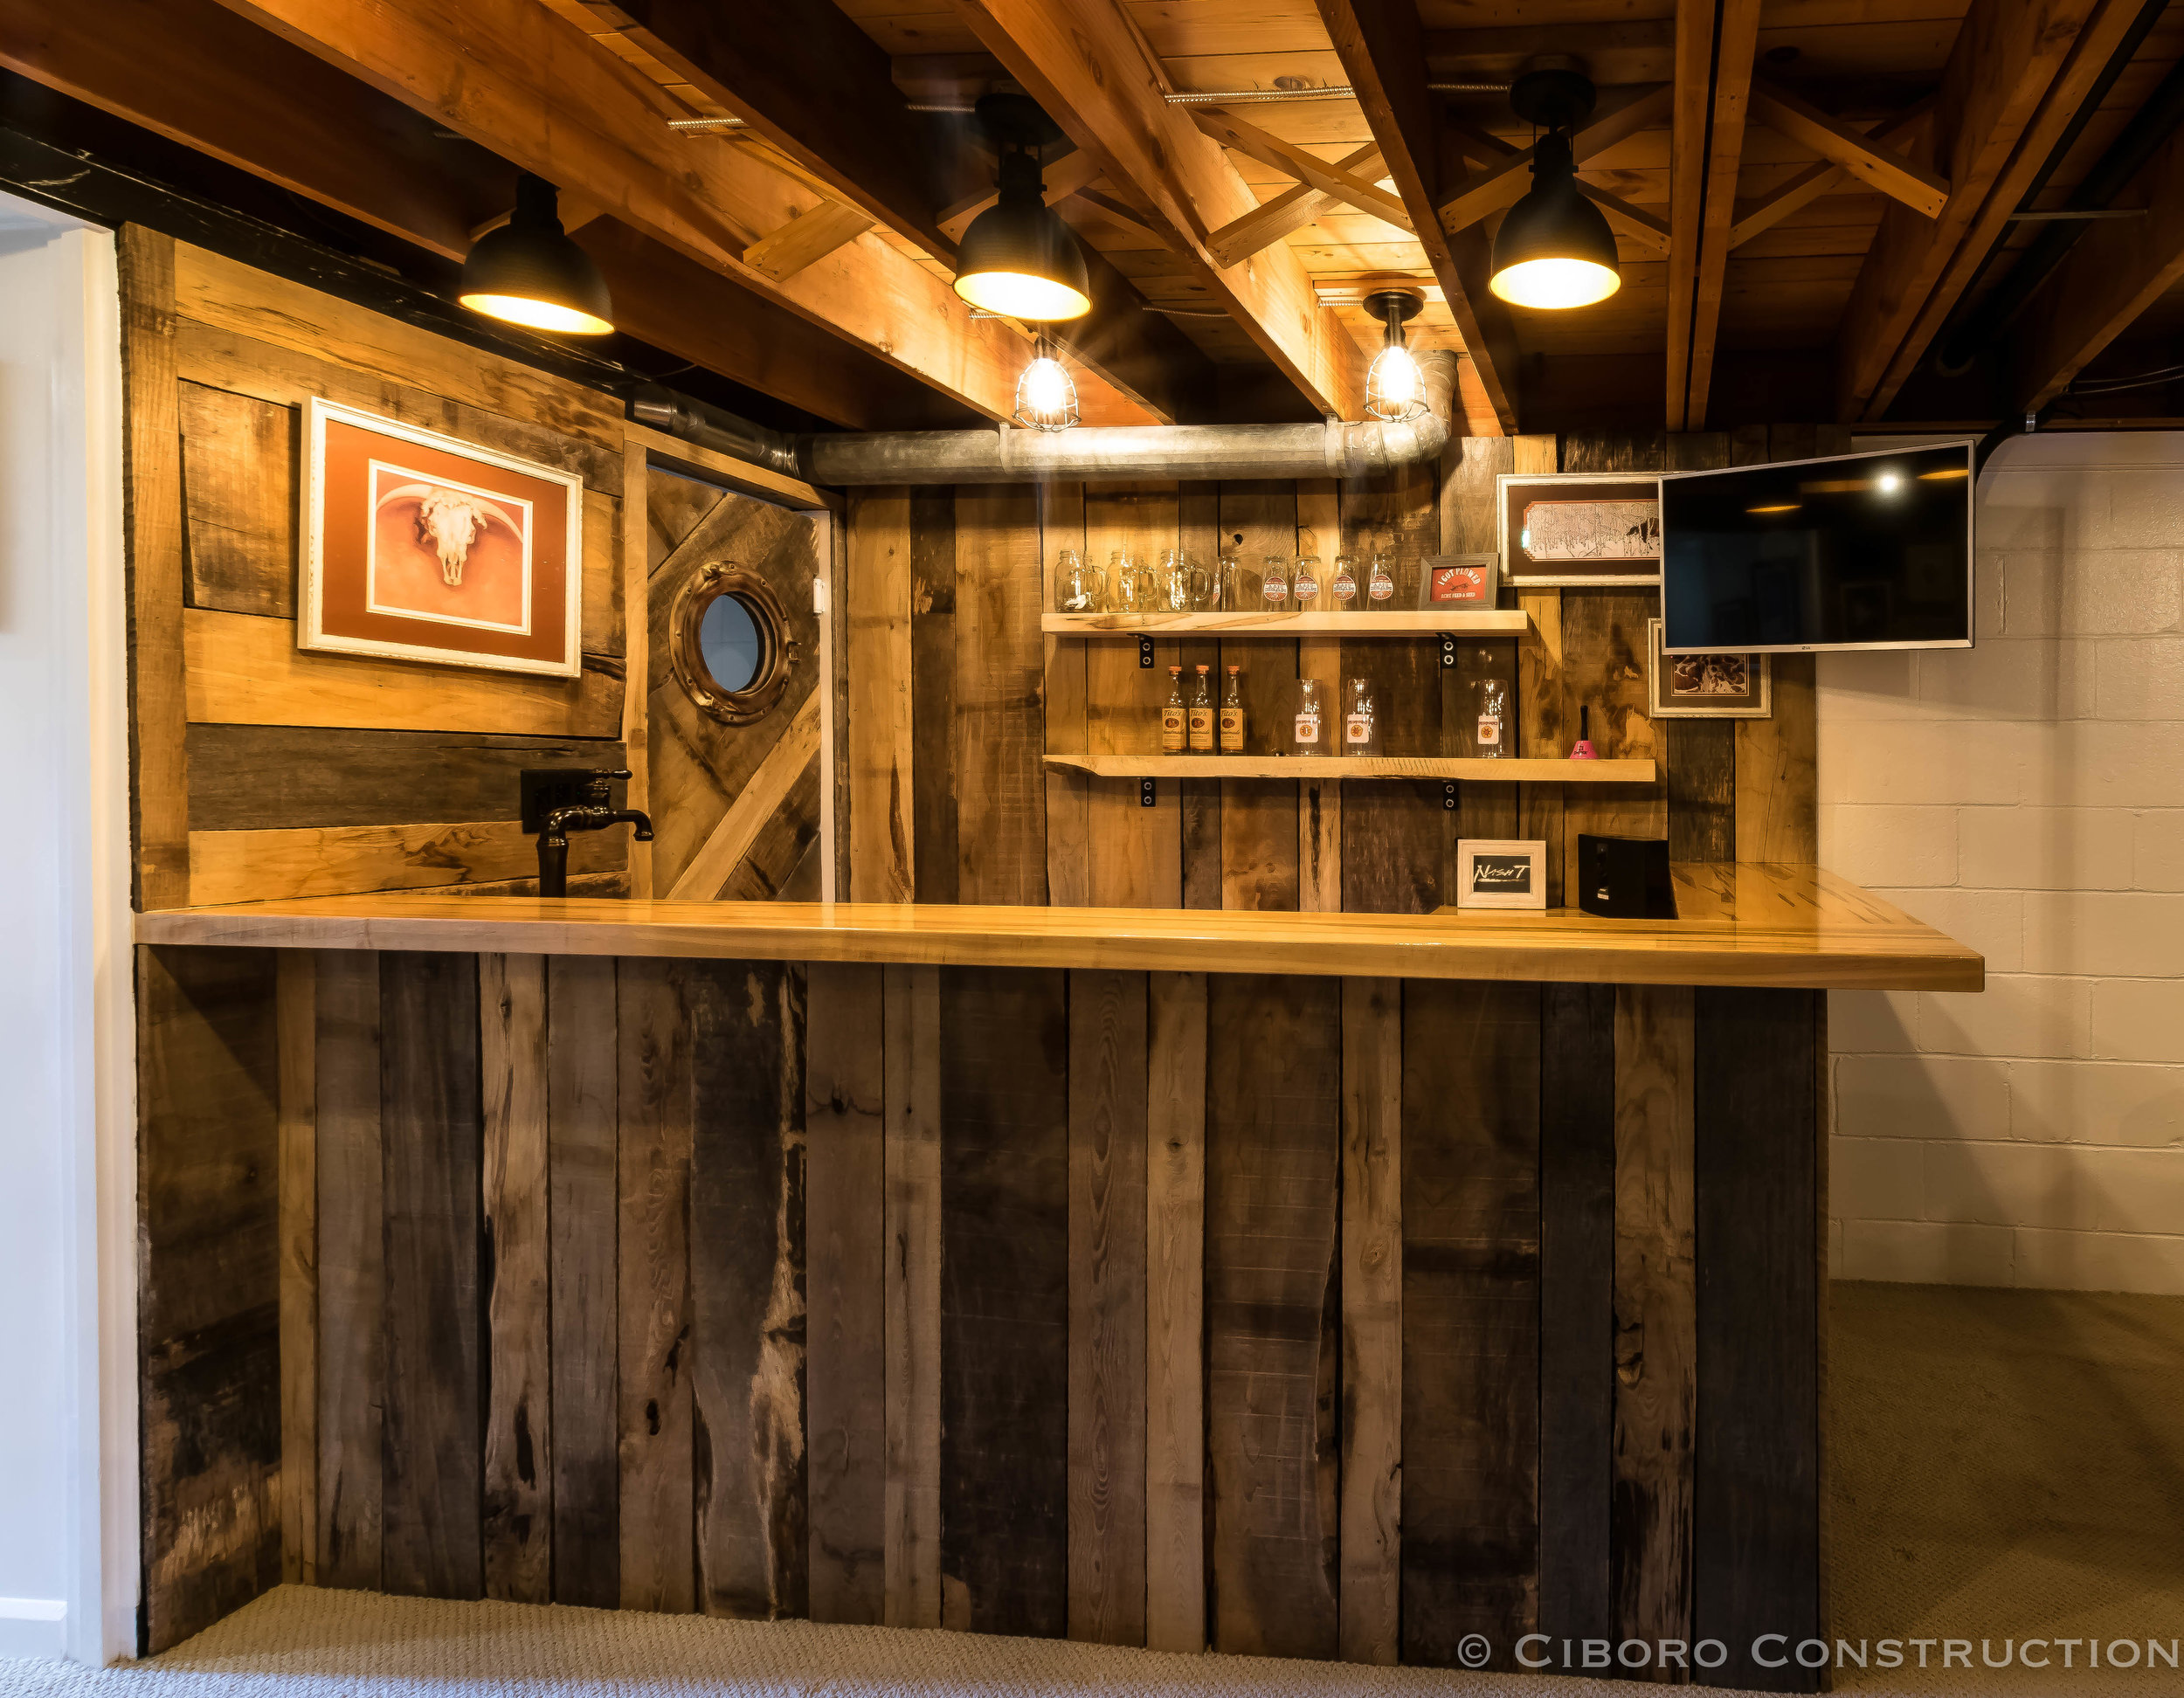 AFTER-Exposed ceiling beams and a custom bar change the feel of the space